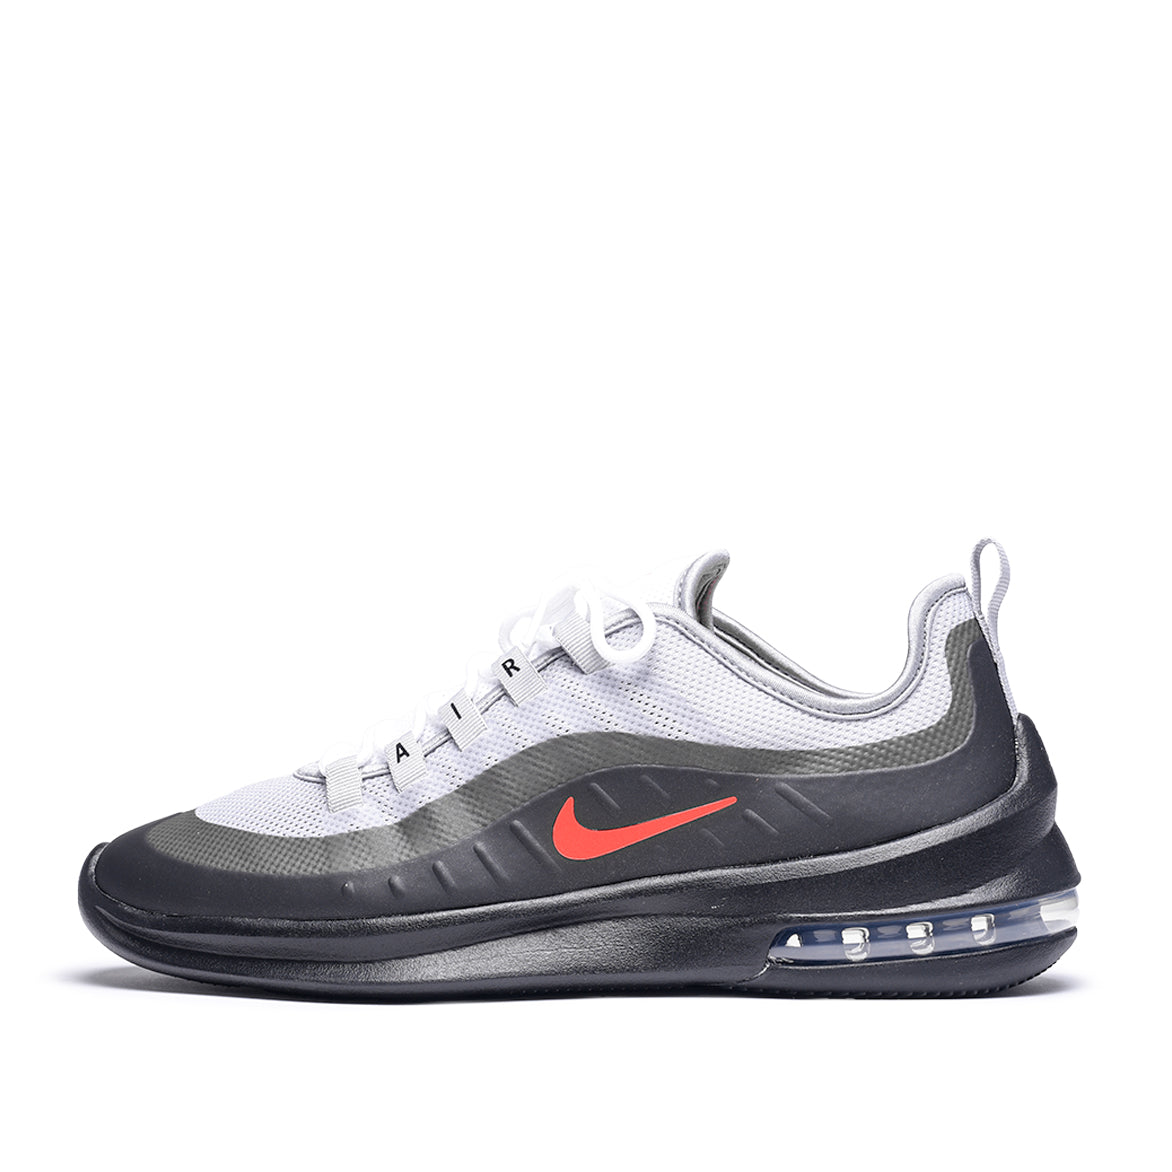 AIR MAX AXIS - WOLF GREY / TOTAL CRIMSON / BLACK